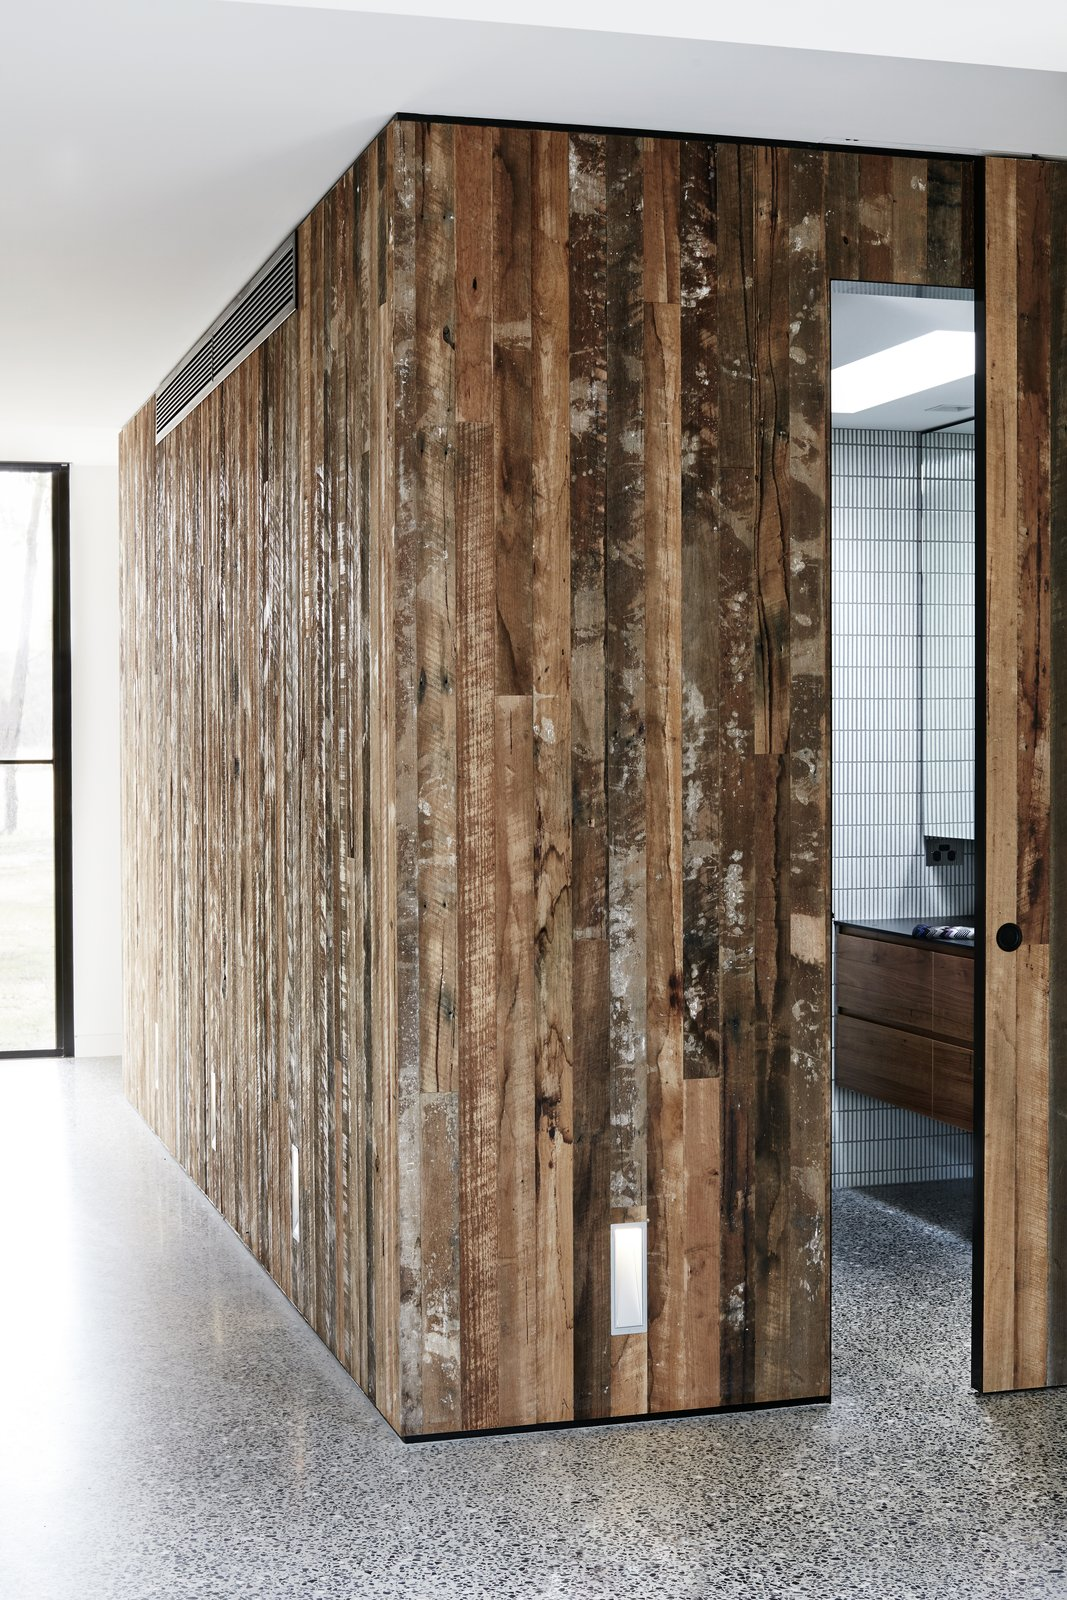 Bath Room, Ceramic Tile Wall, and Concrete Floor  Photo 5 of 9 in Recycled Wood Stars in an Ogle-Worthy Renovation in Australia